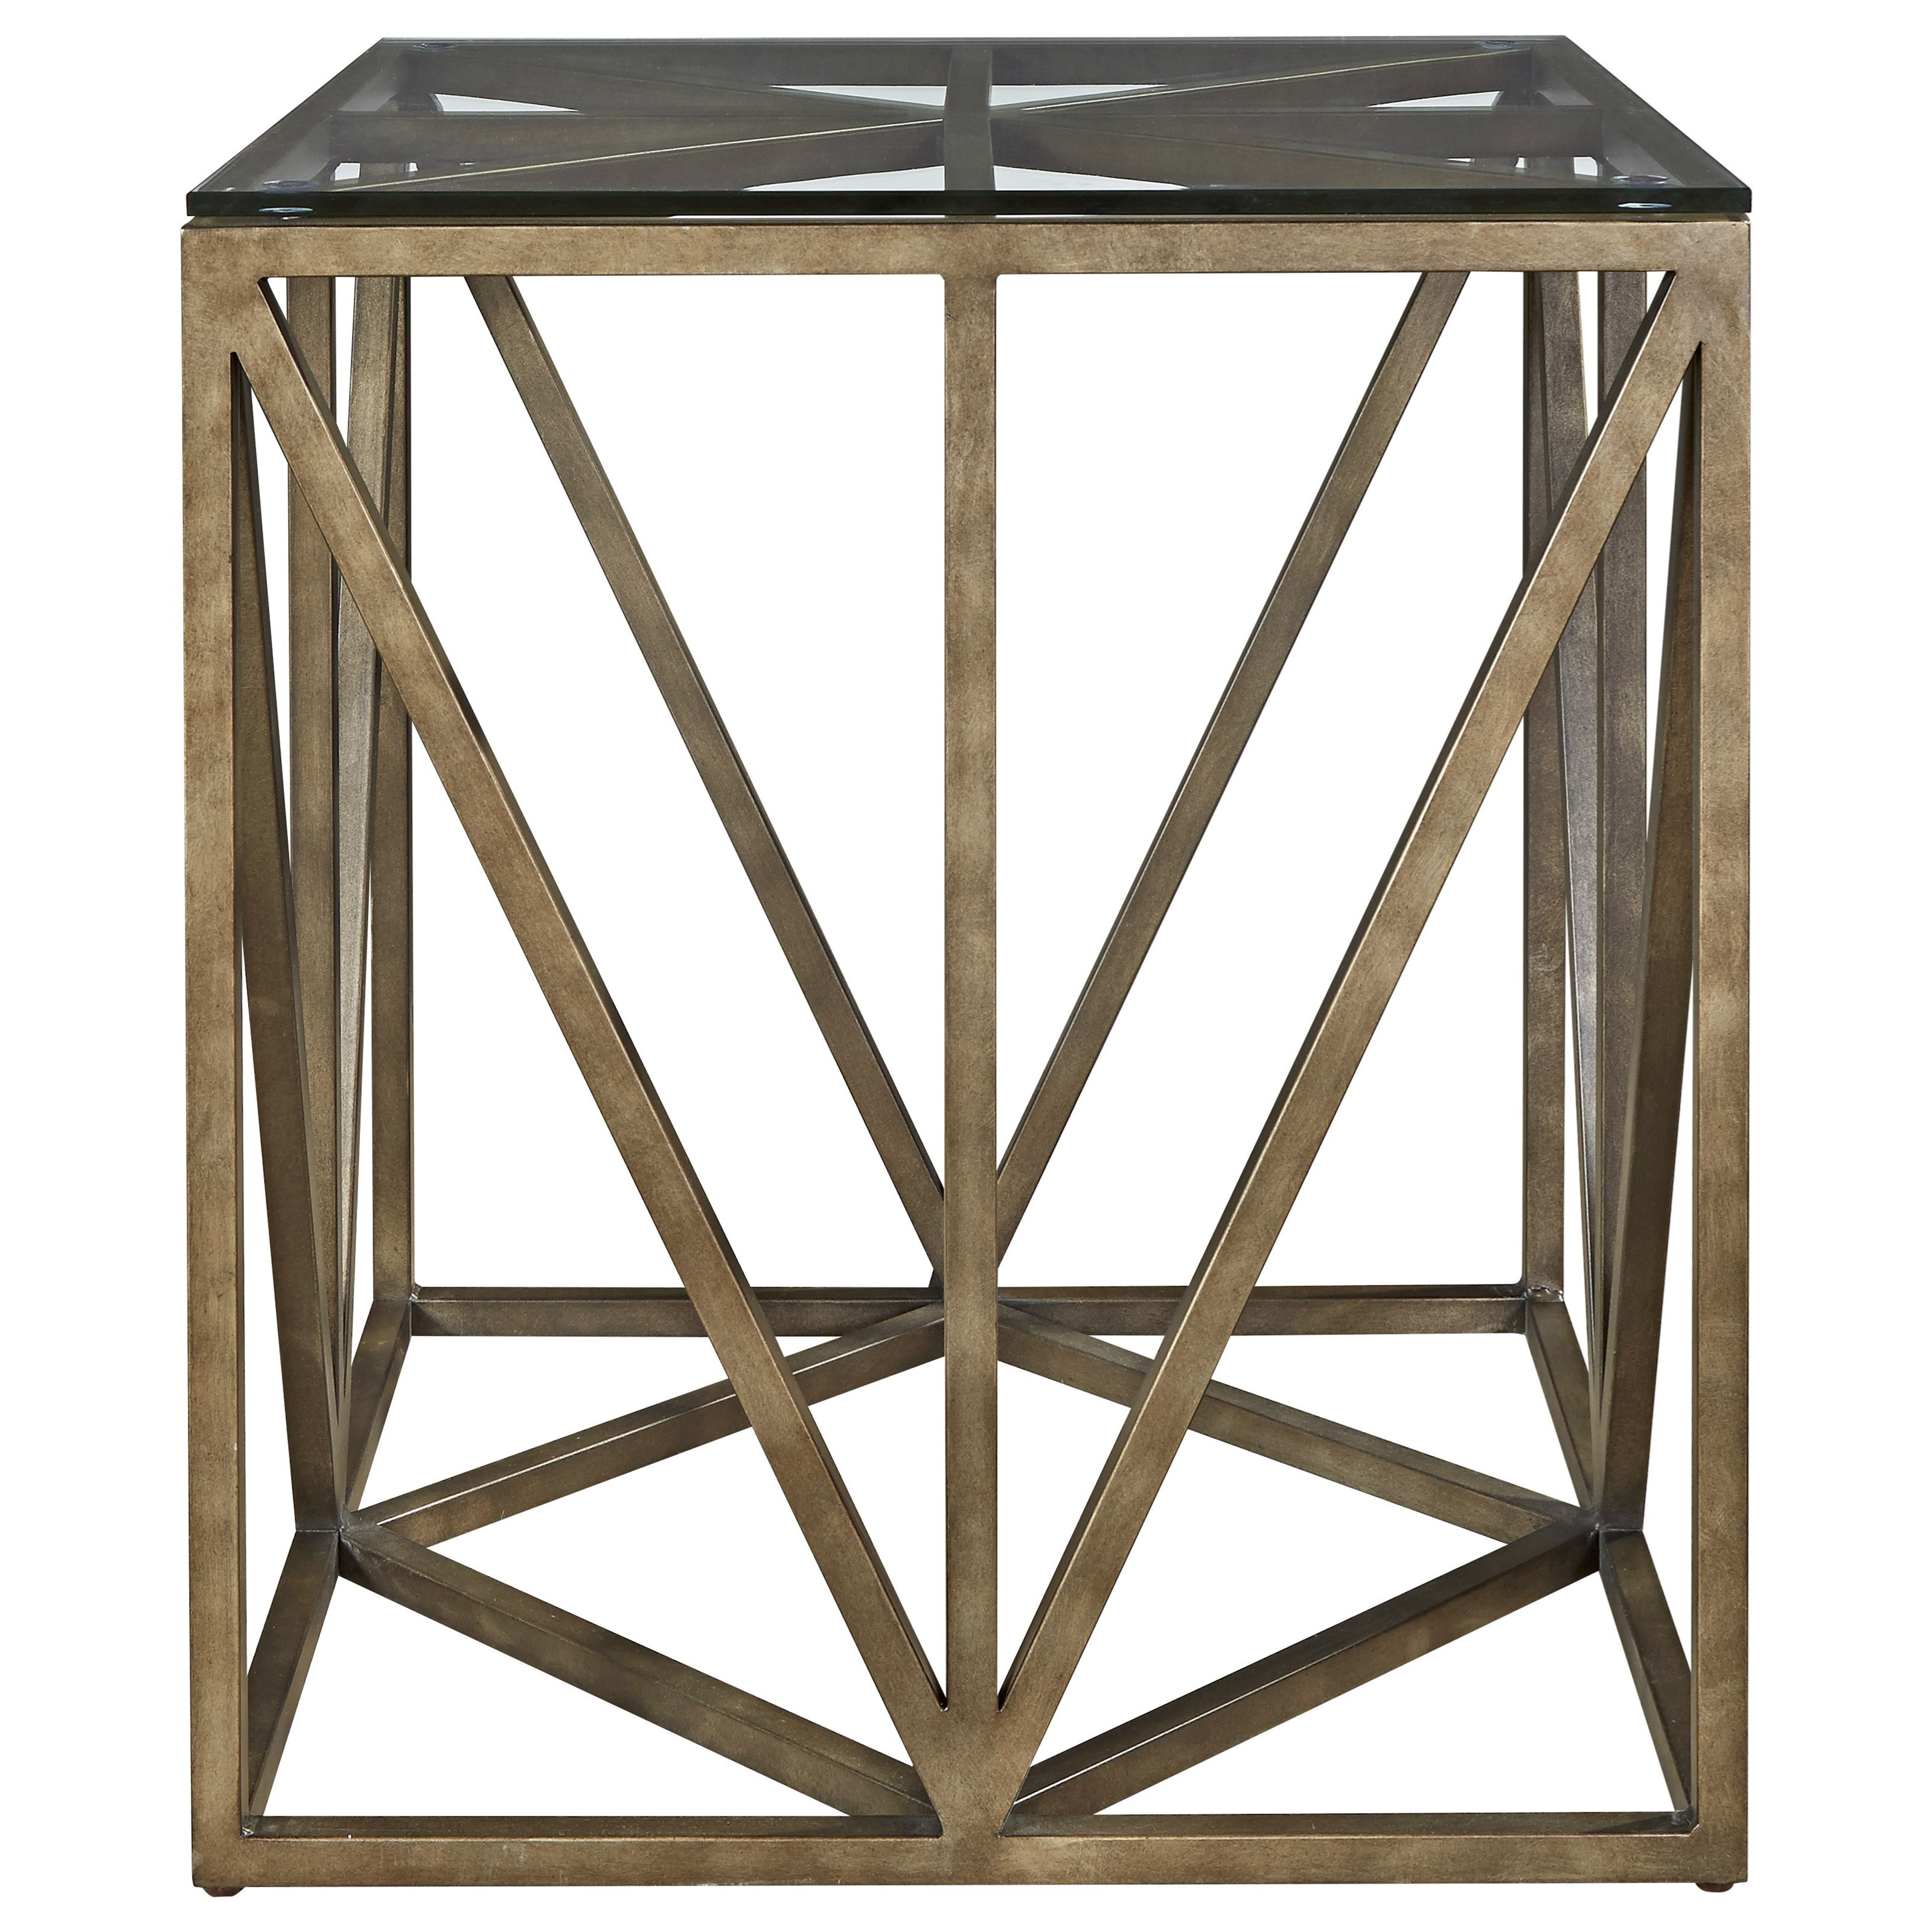 Universal Authenticity Truss Square End Table - Item Number: 572802